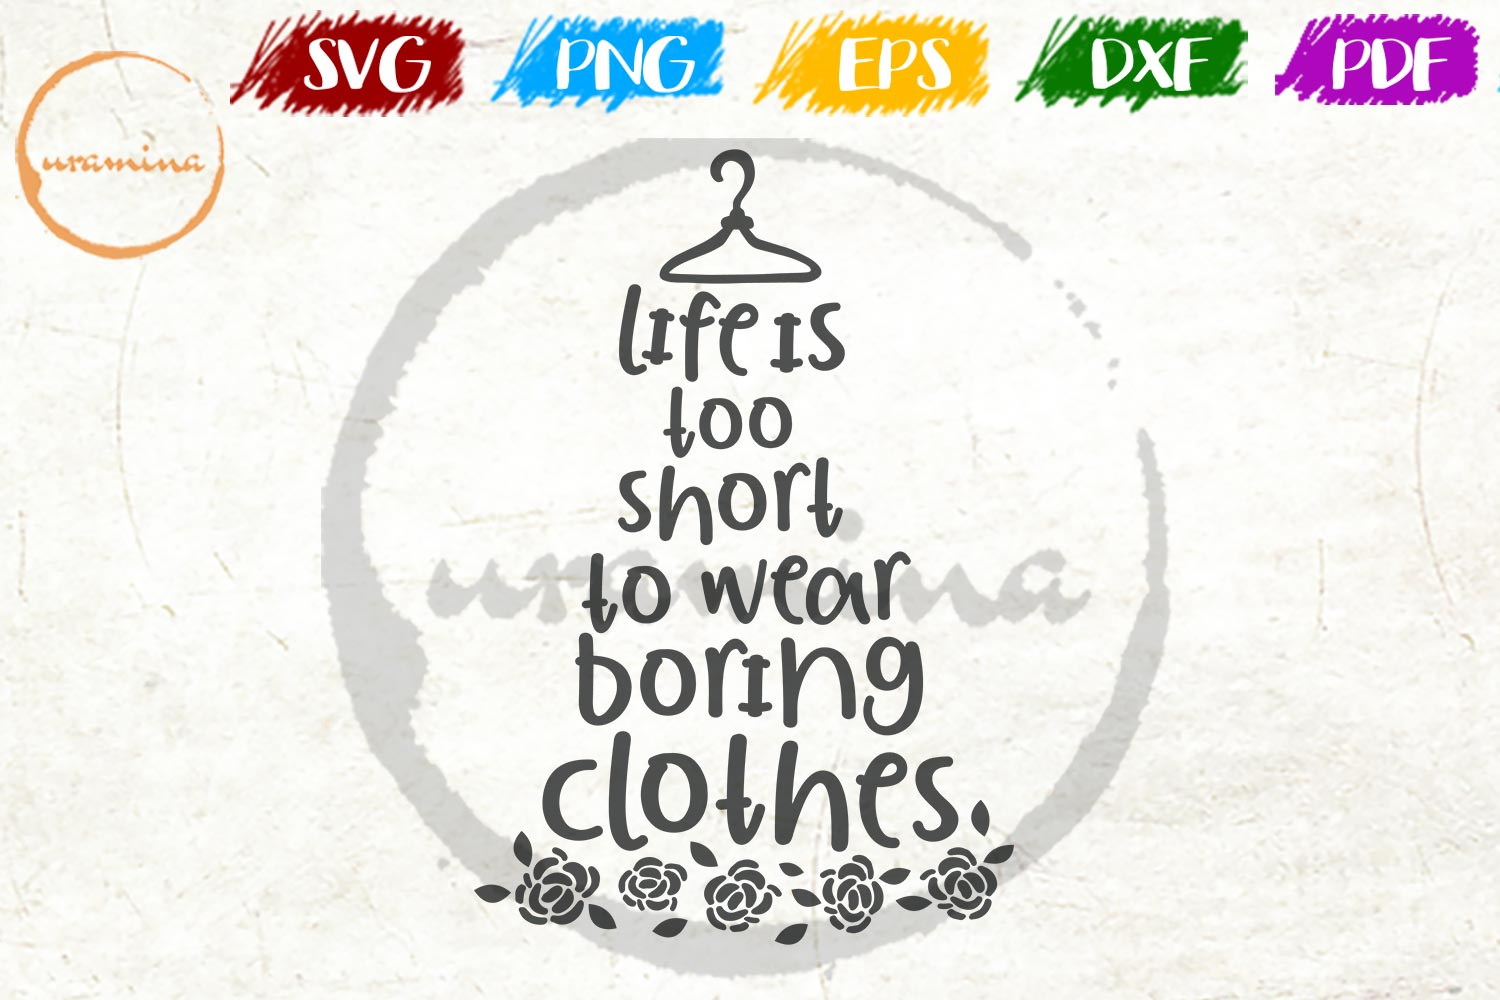 Download Free Life Too Short To Wear Boring Clothes Graphic By Uramina for Cricut Explore, Silhouette and other cutting machines.